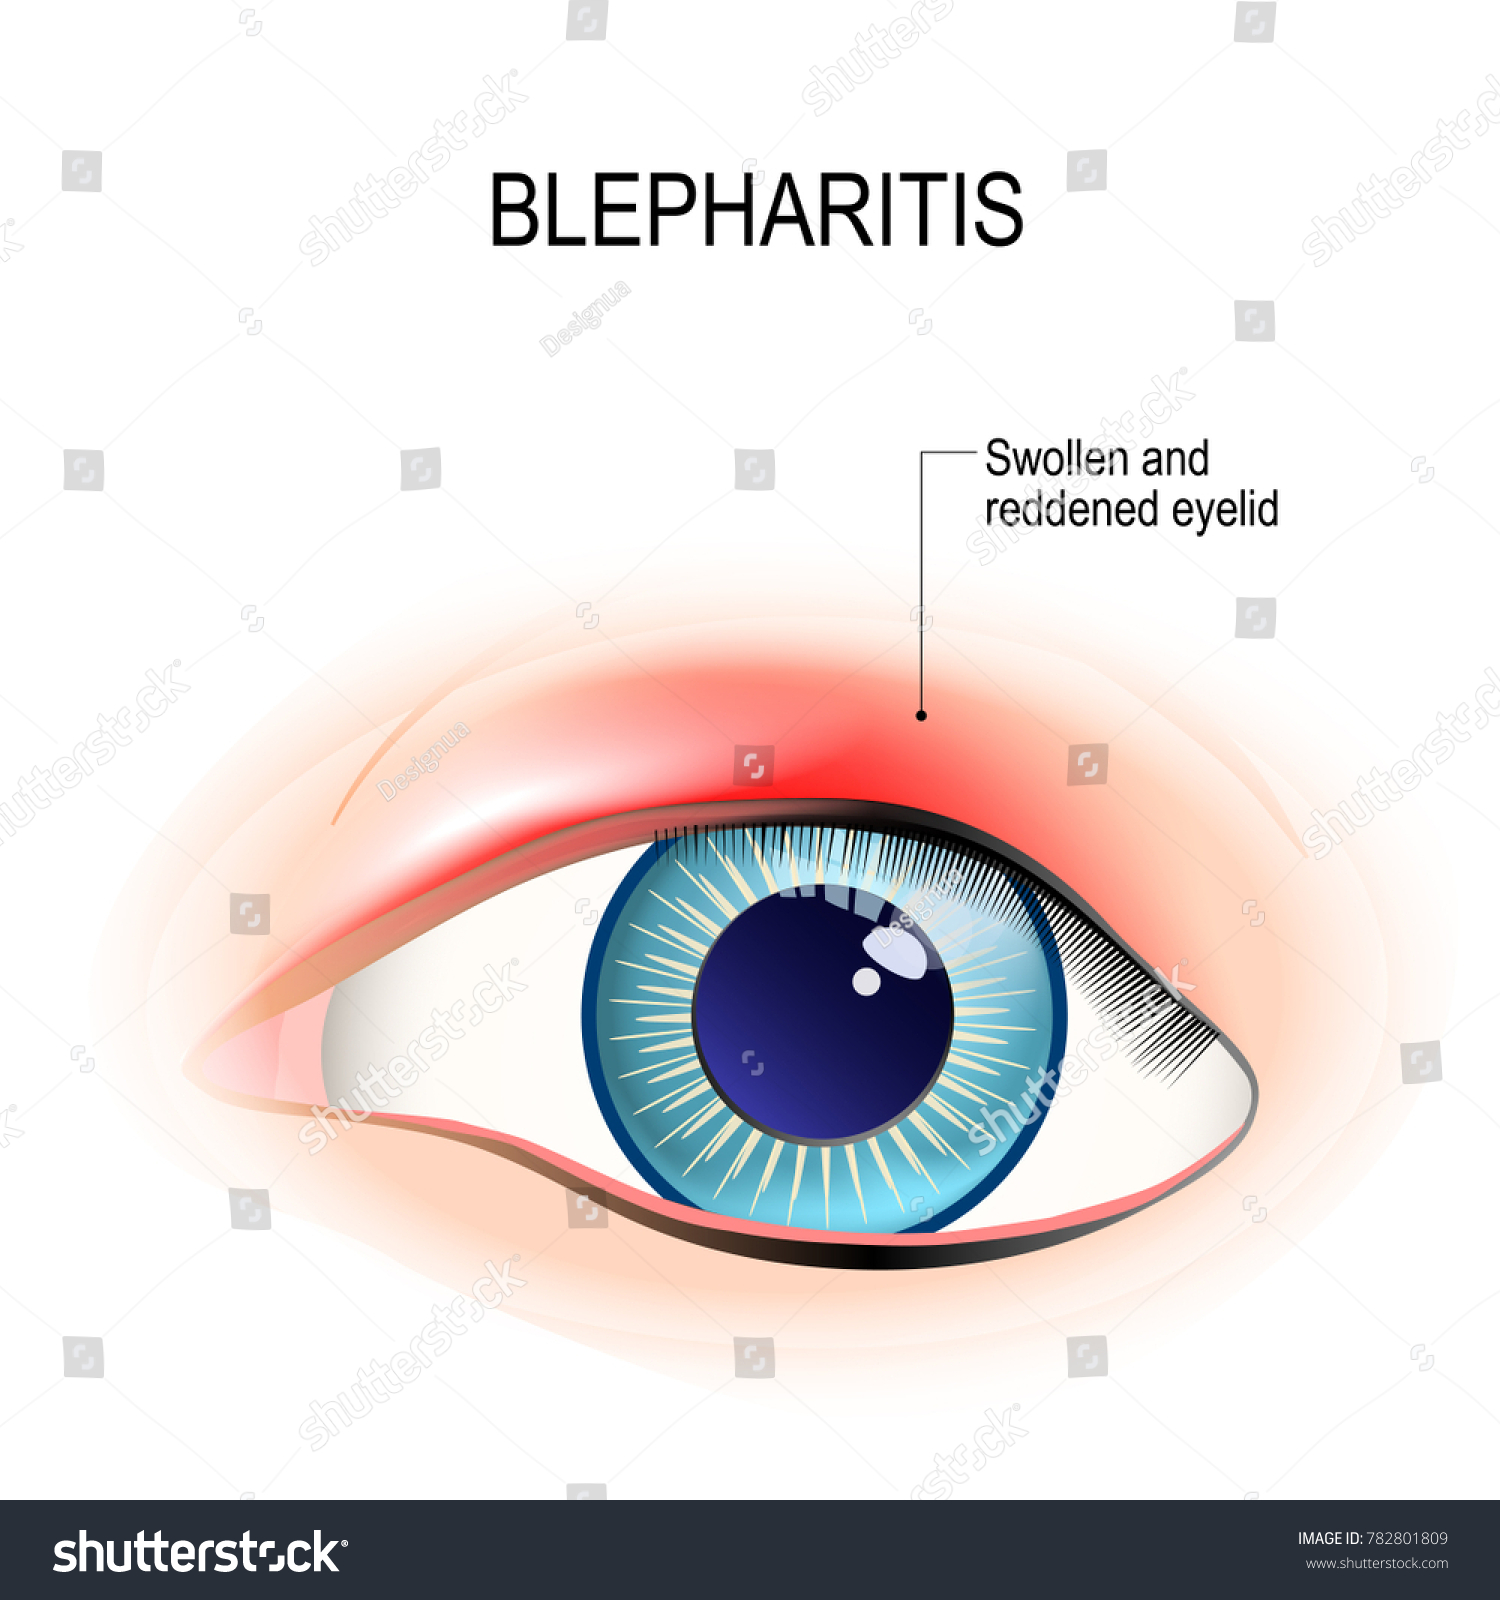 Eye Human Blepharitis Inflammation Reddening Eyelid Stock Vector ...